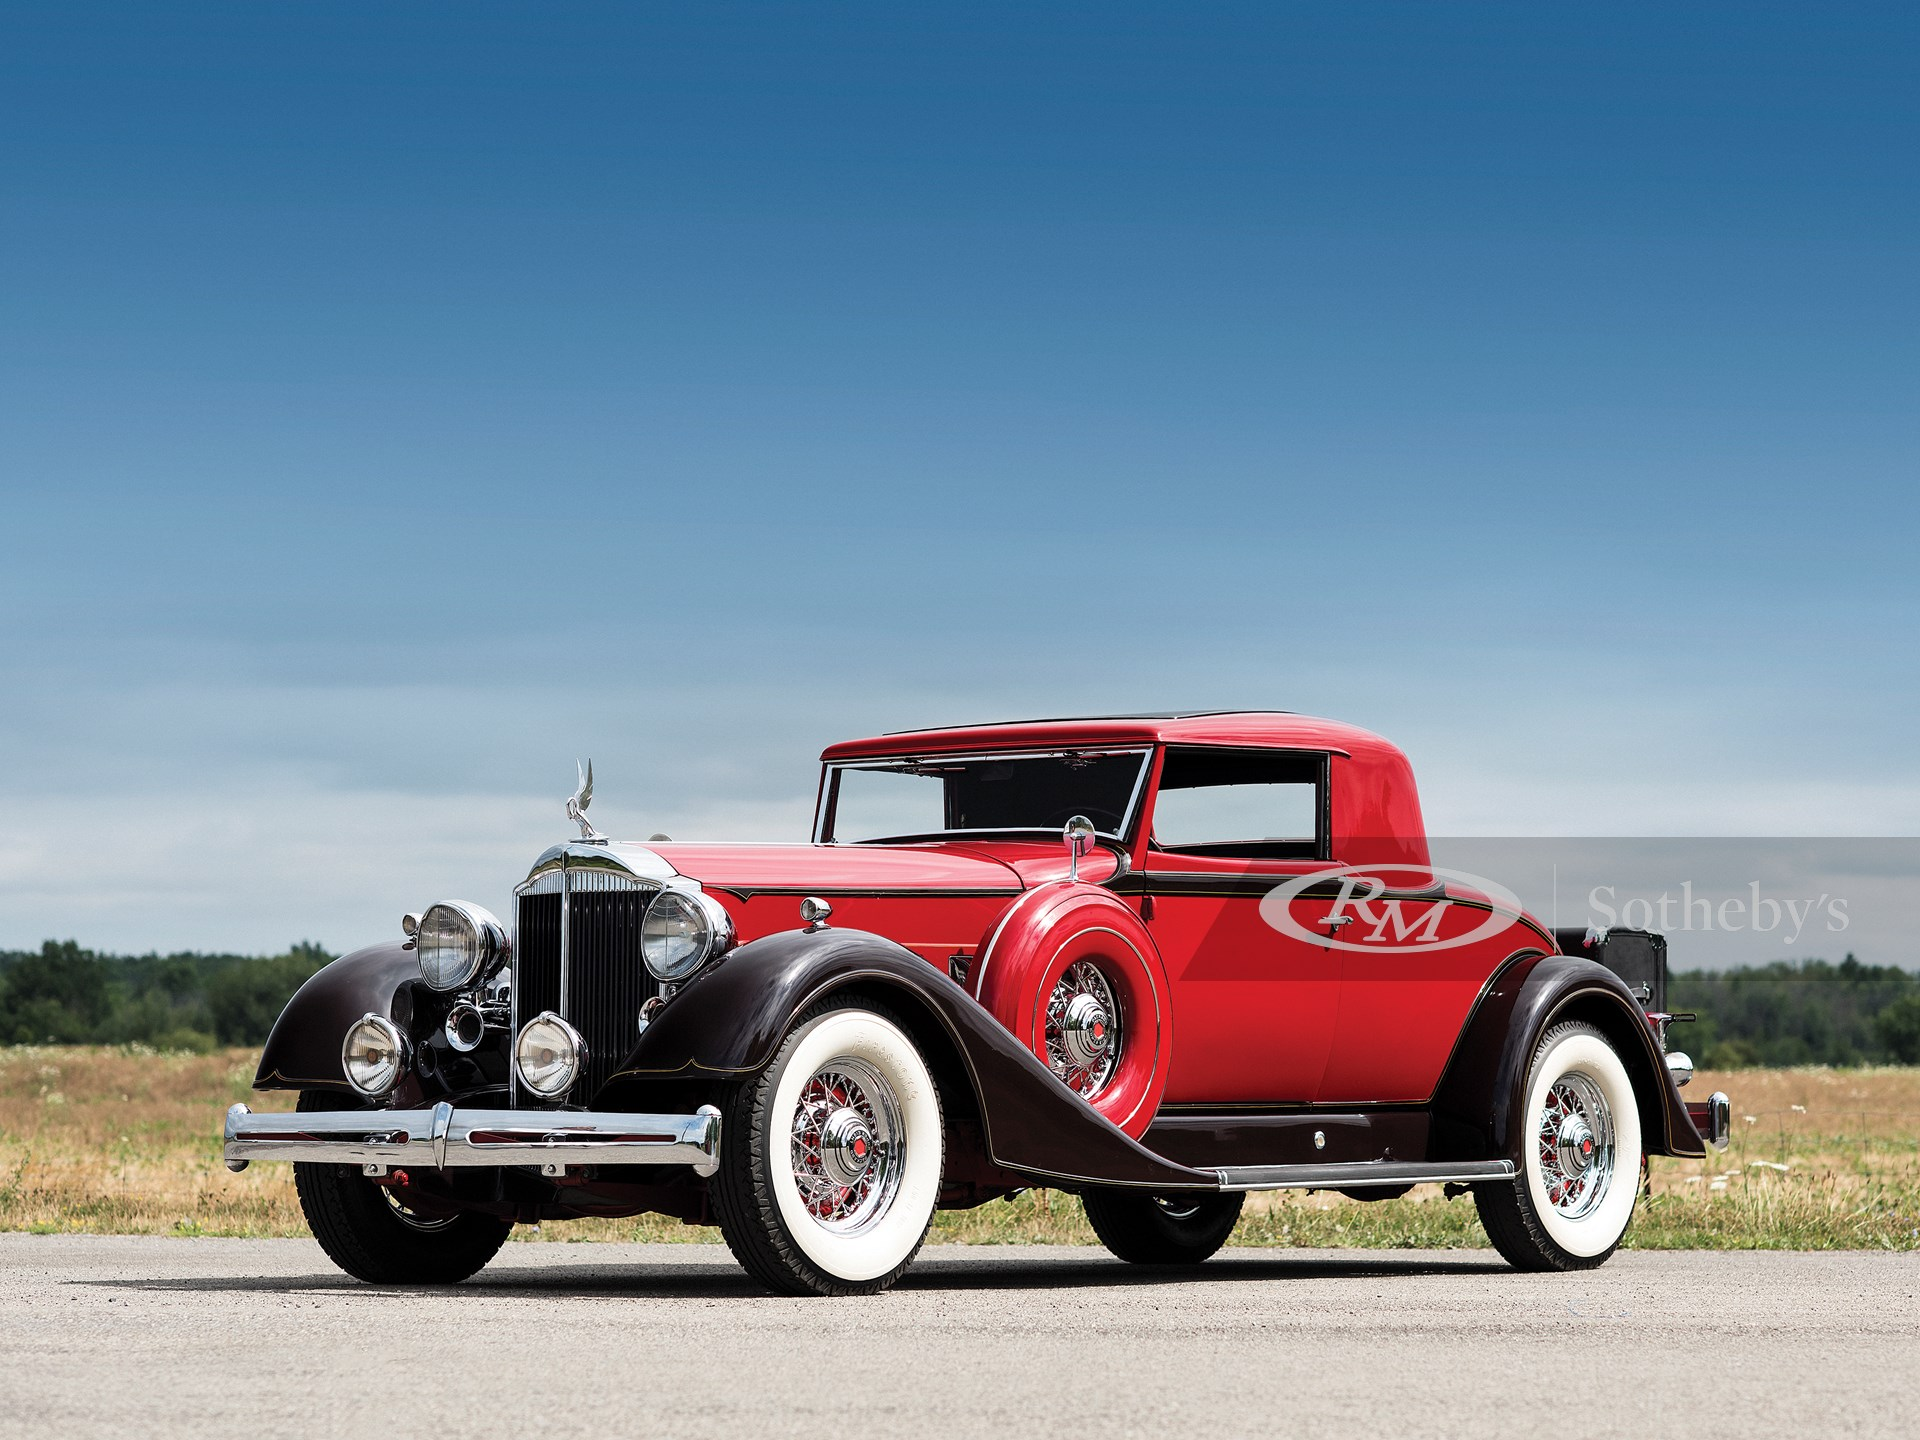 1934 Packard Super Eight Two-Passenger Coupe